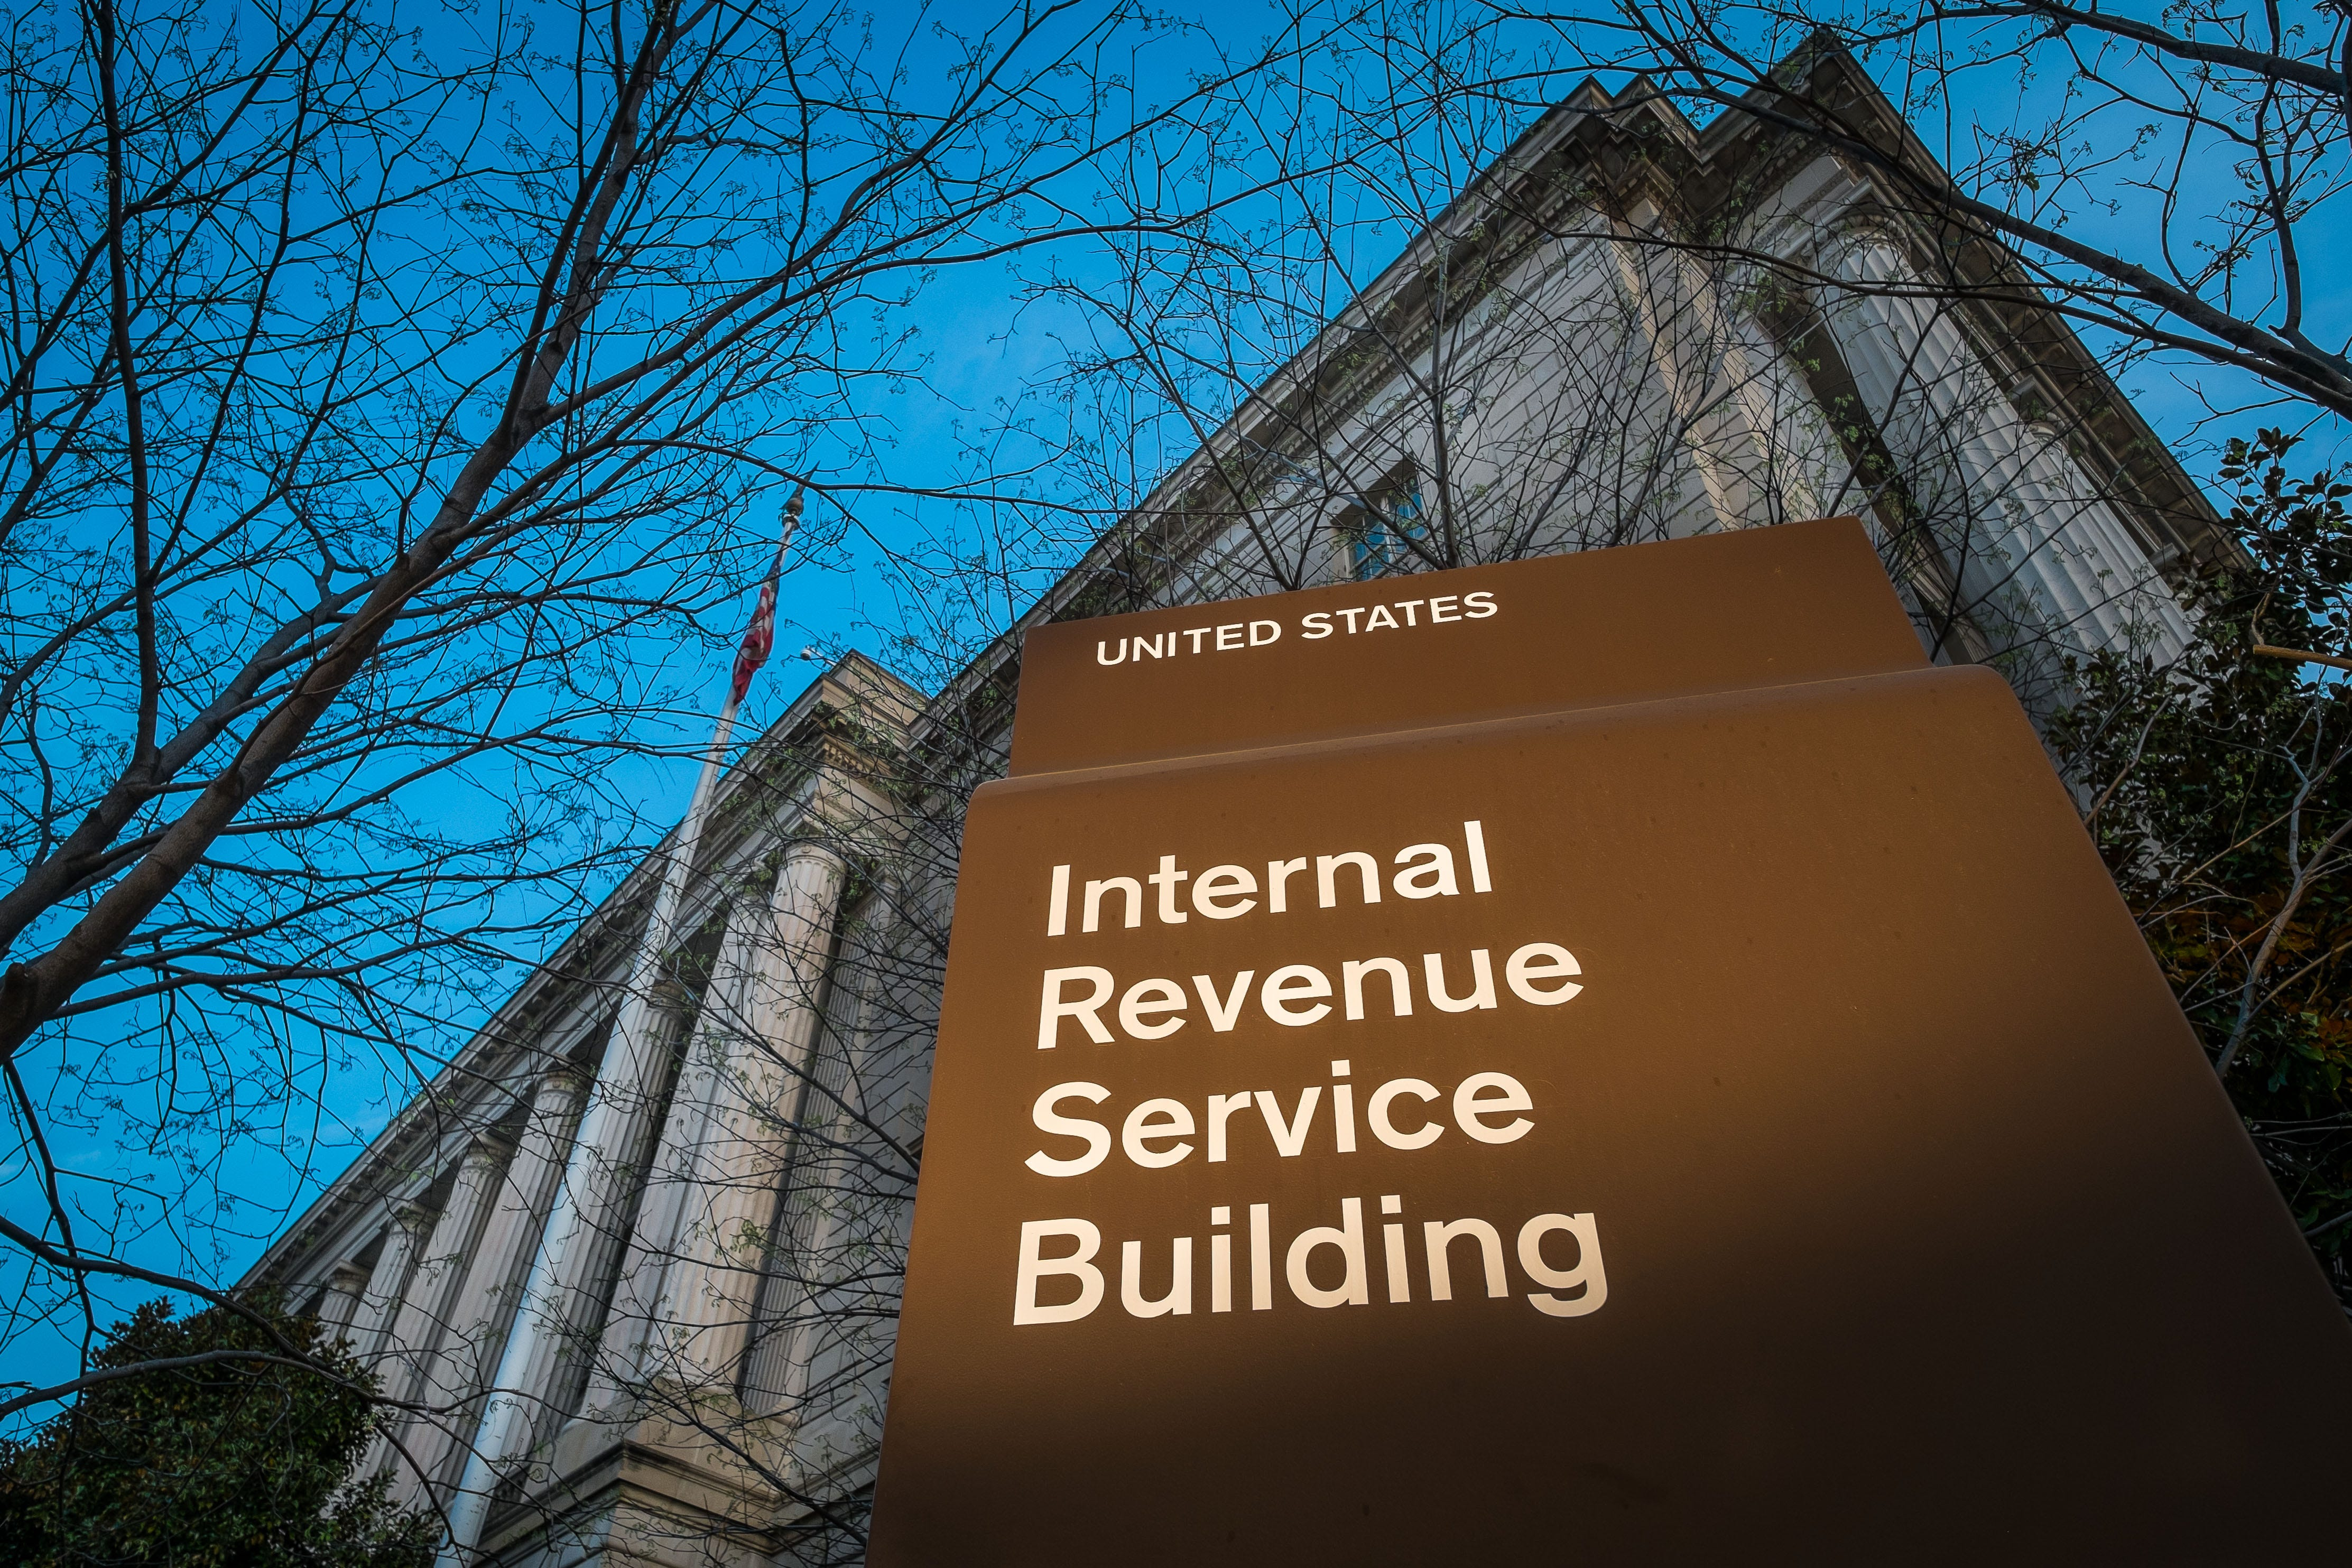 IRS agrees to $50,000 settlement in leaking of conservative group's donor records